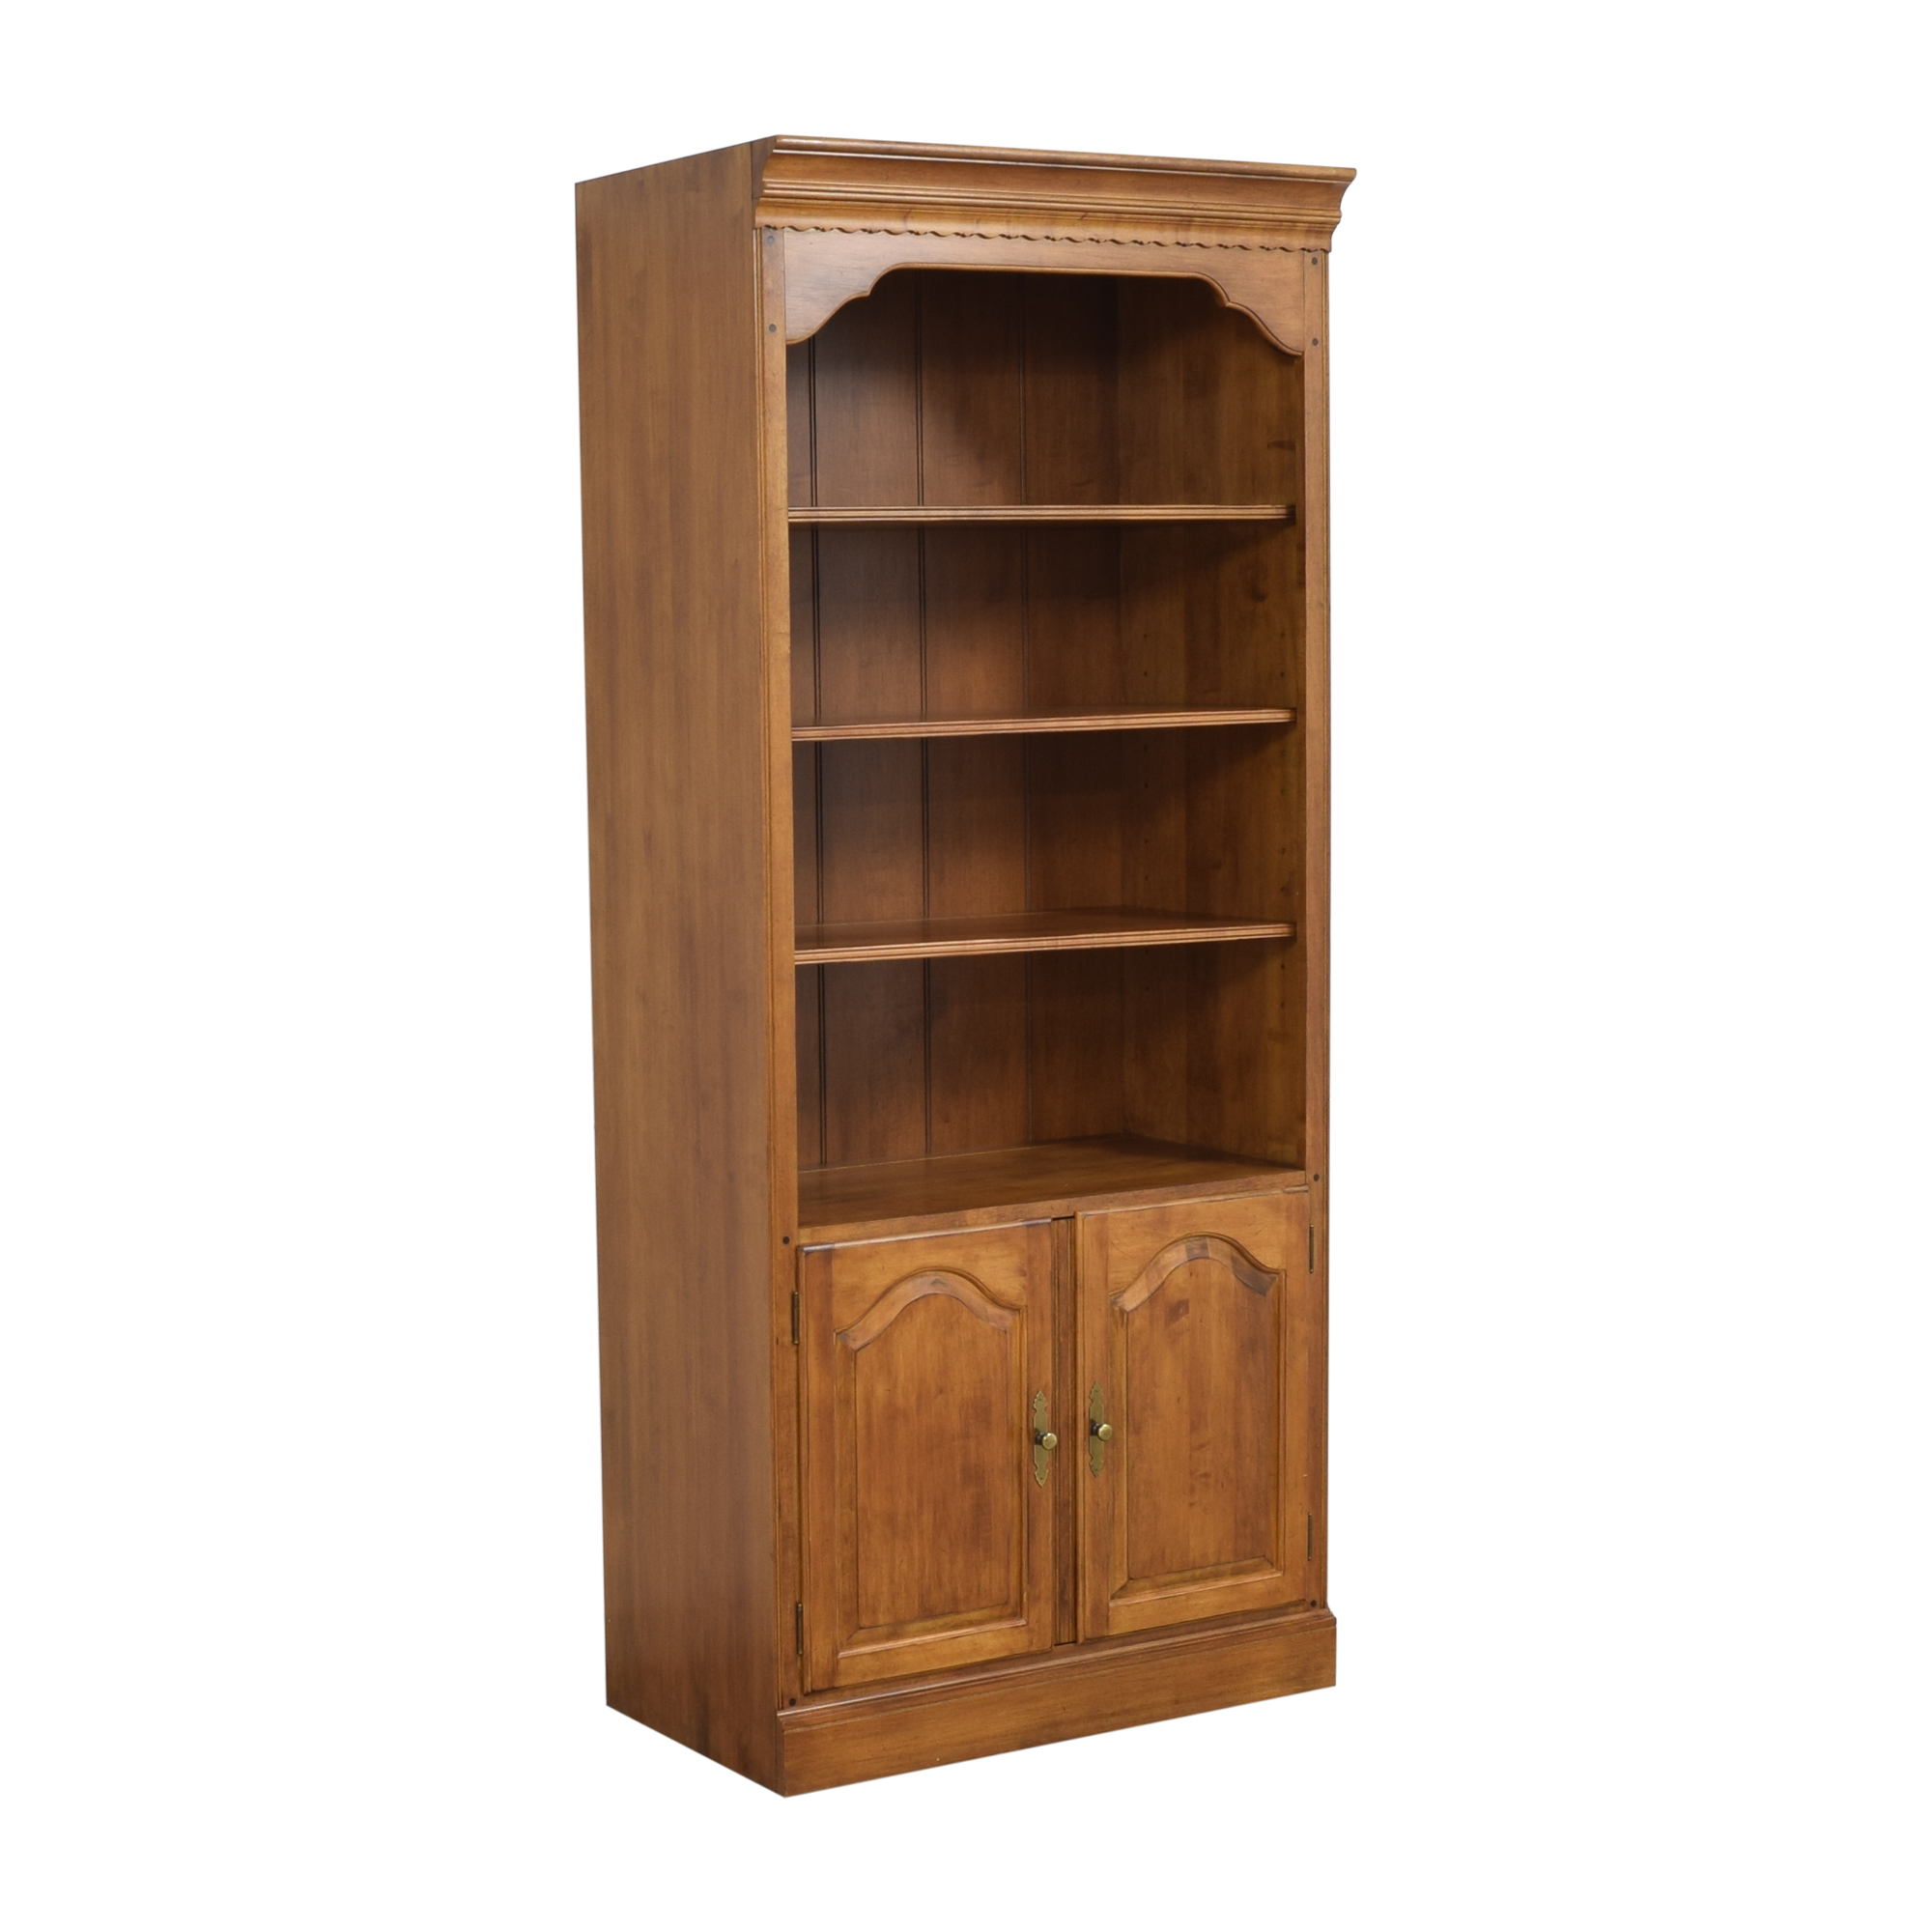 Ethan Allen Ethan Allen Circa 1776 Collection Bookcase with Cabinet ct